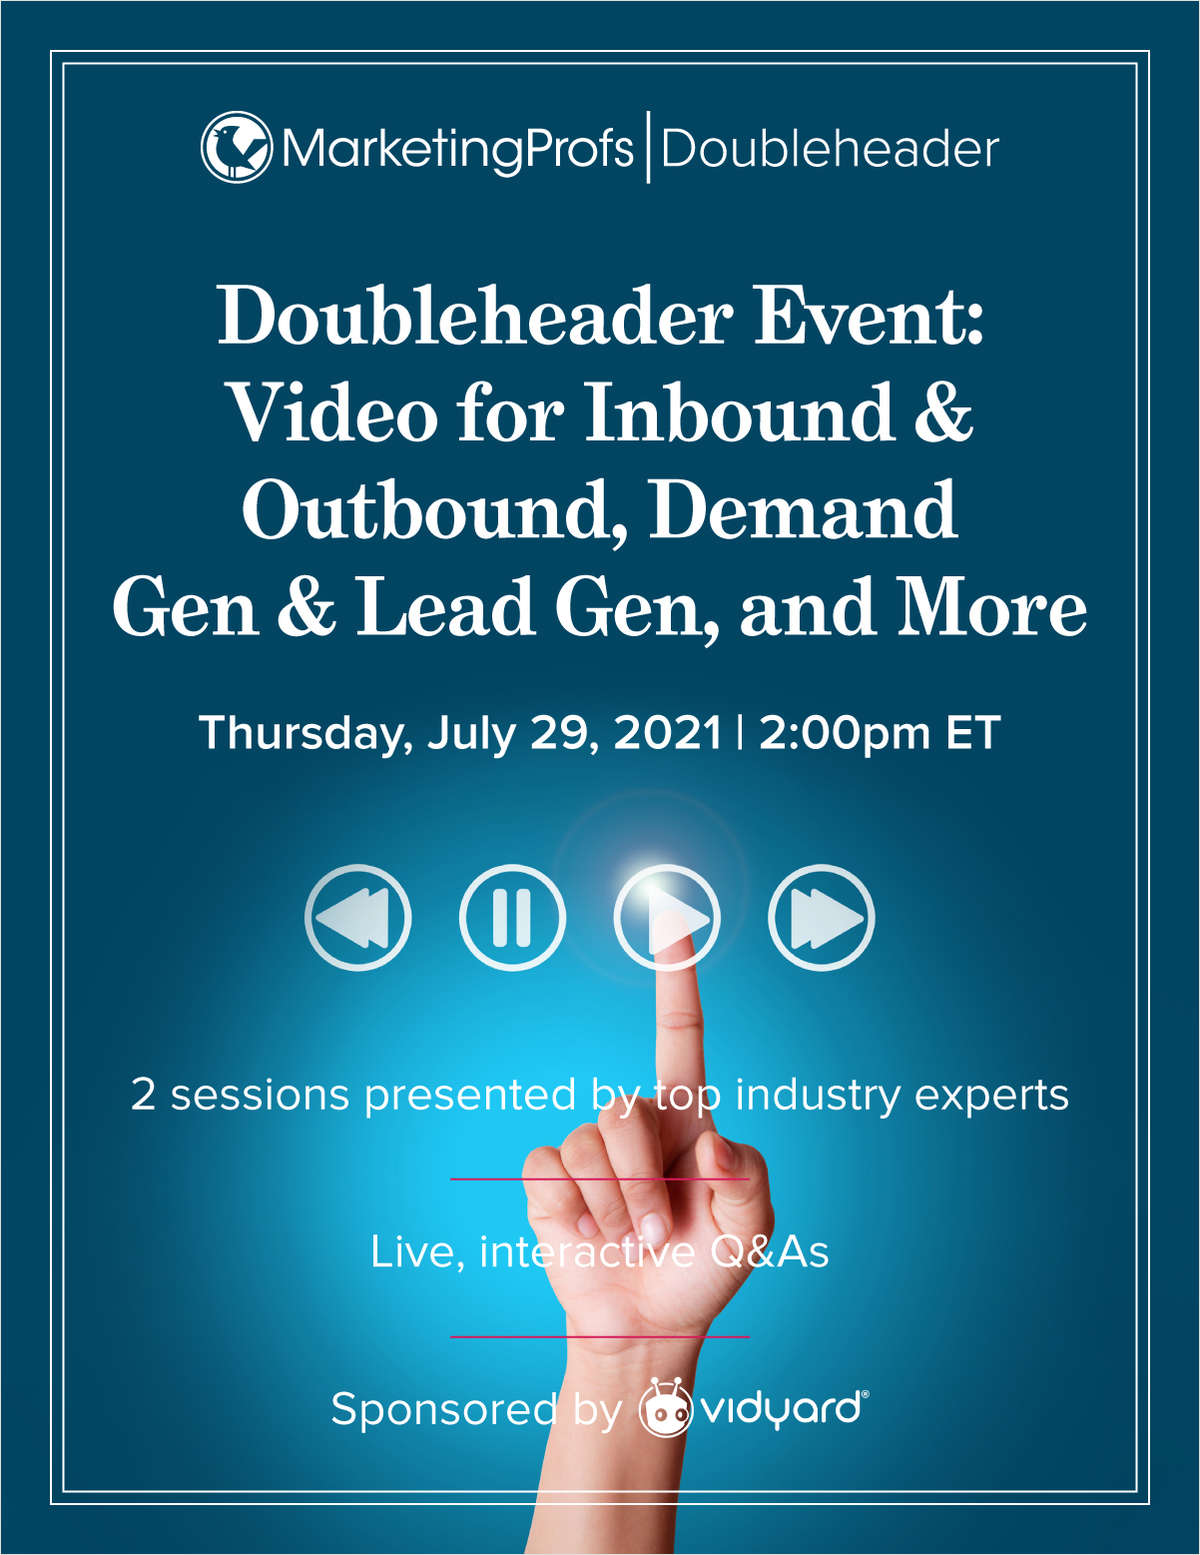 Doubleheader Event: Video for Inbound & Outbound, Demand Gen & Lead Gen, and More